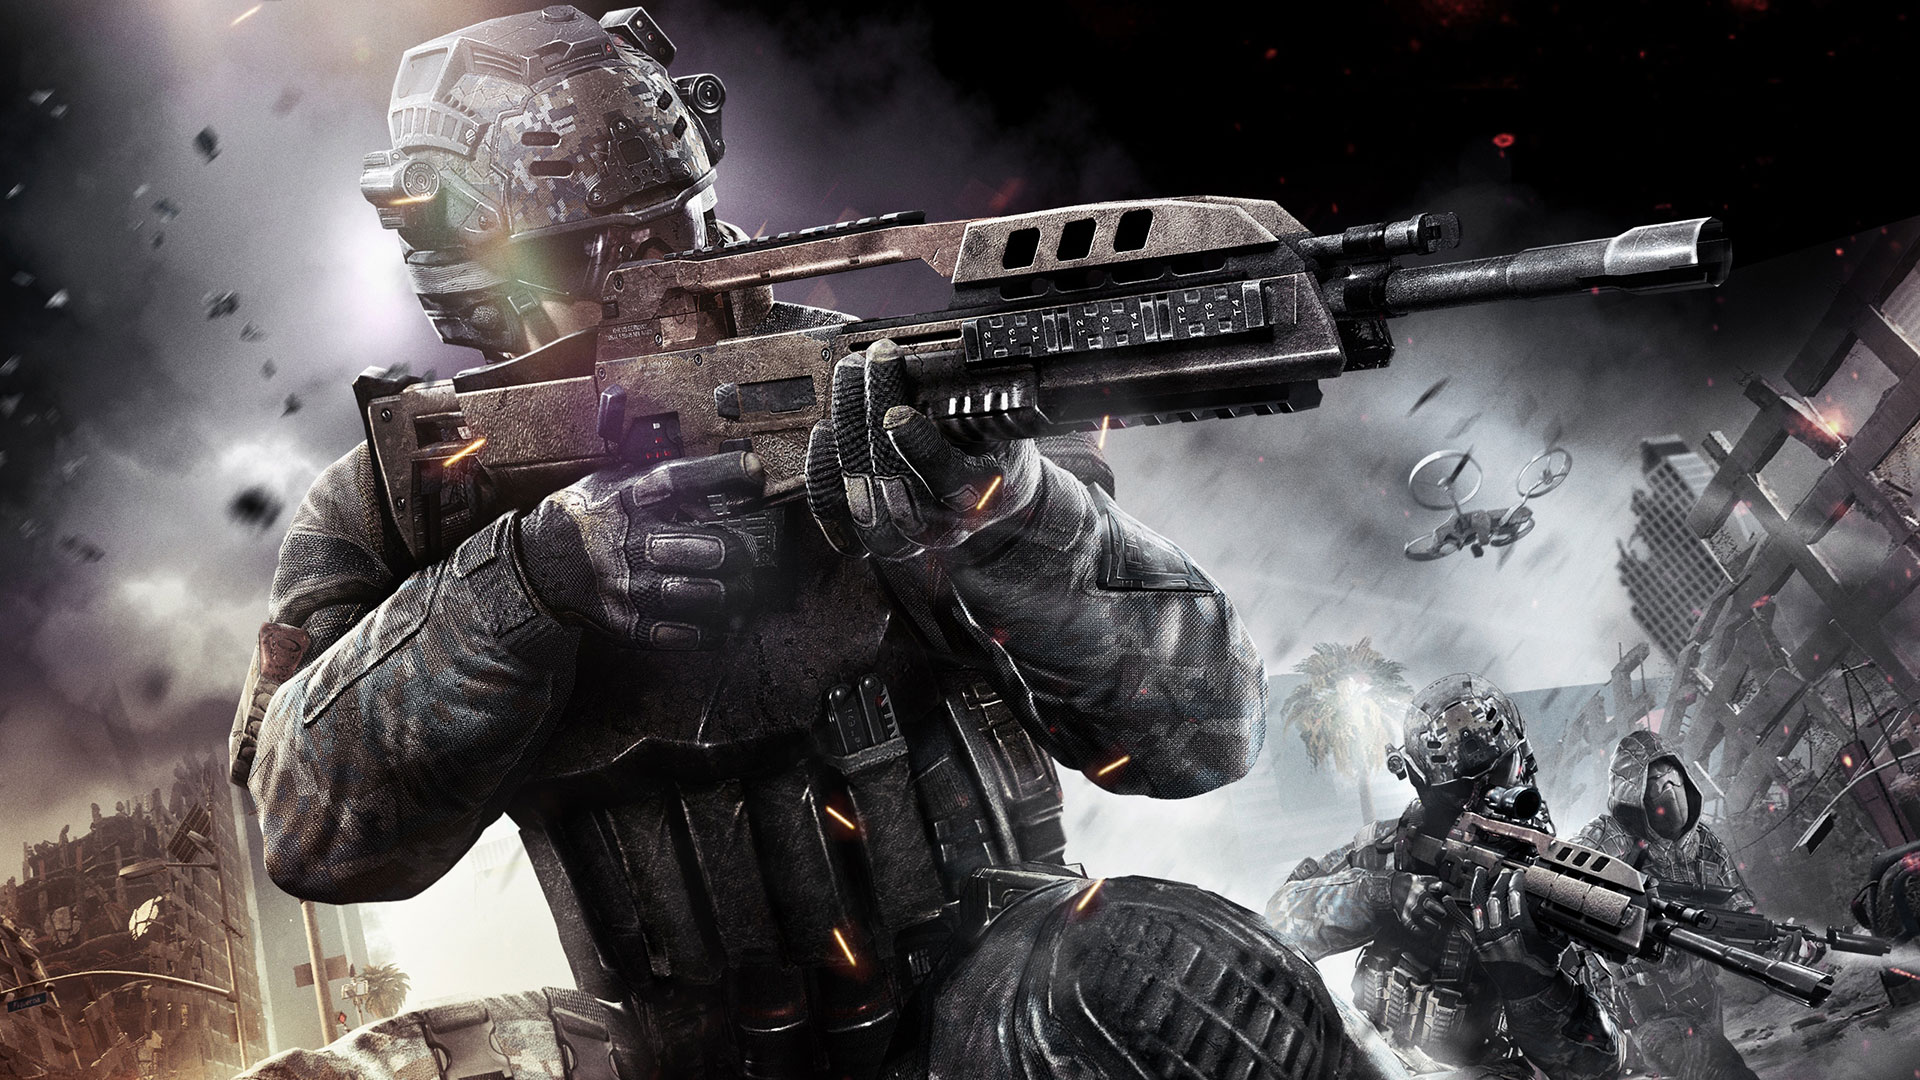 Black Ops 2 Uprising DLC Video Previewed The Koalition